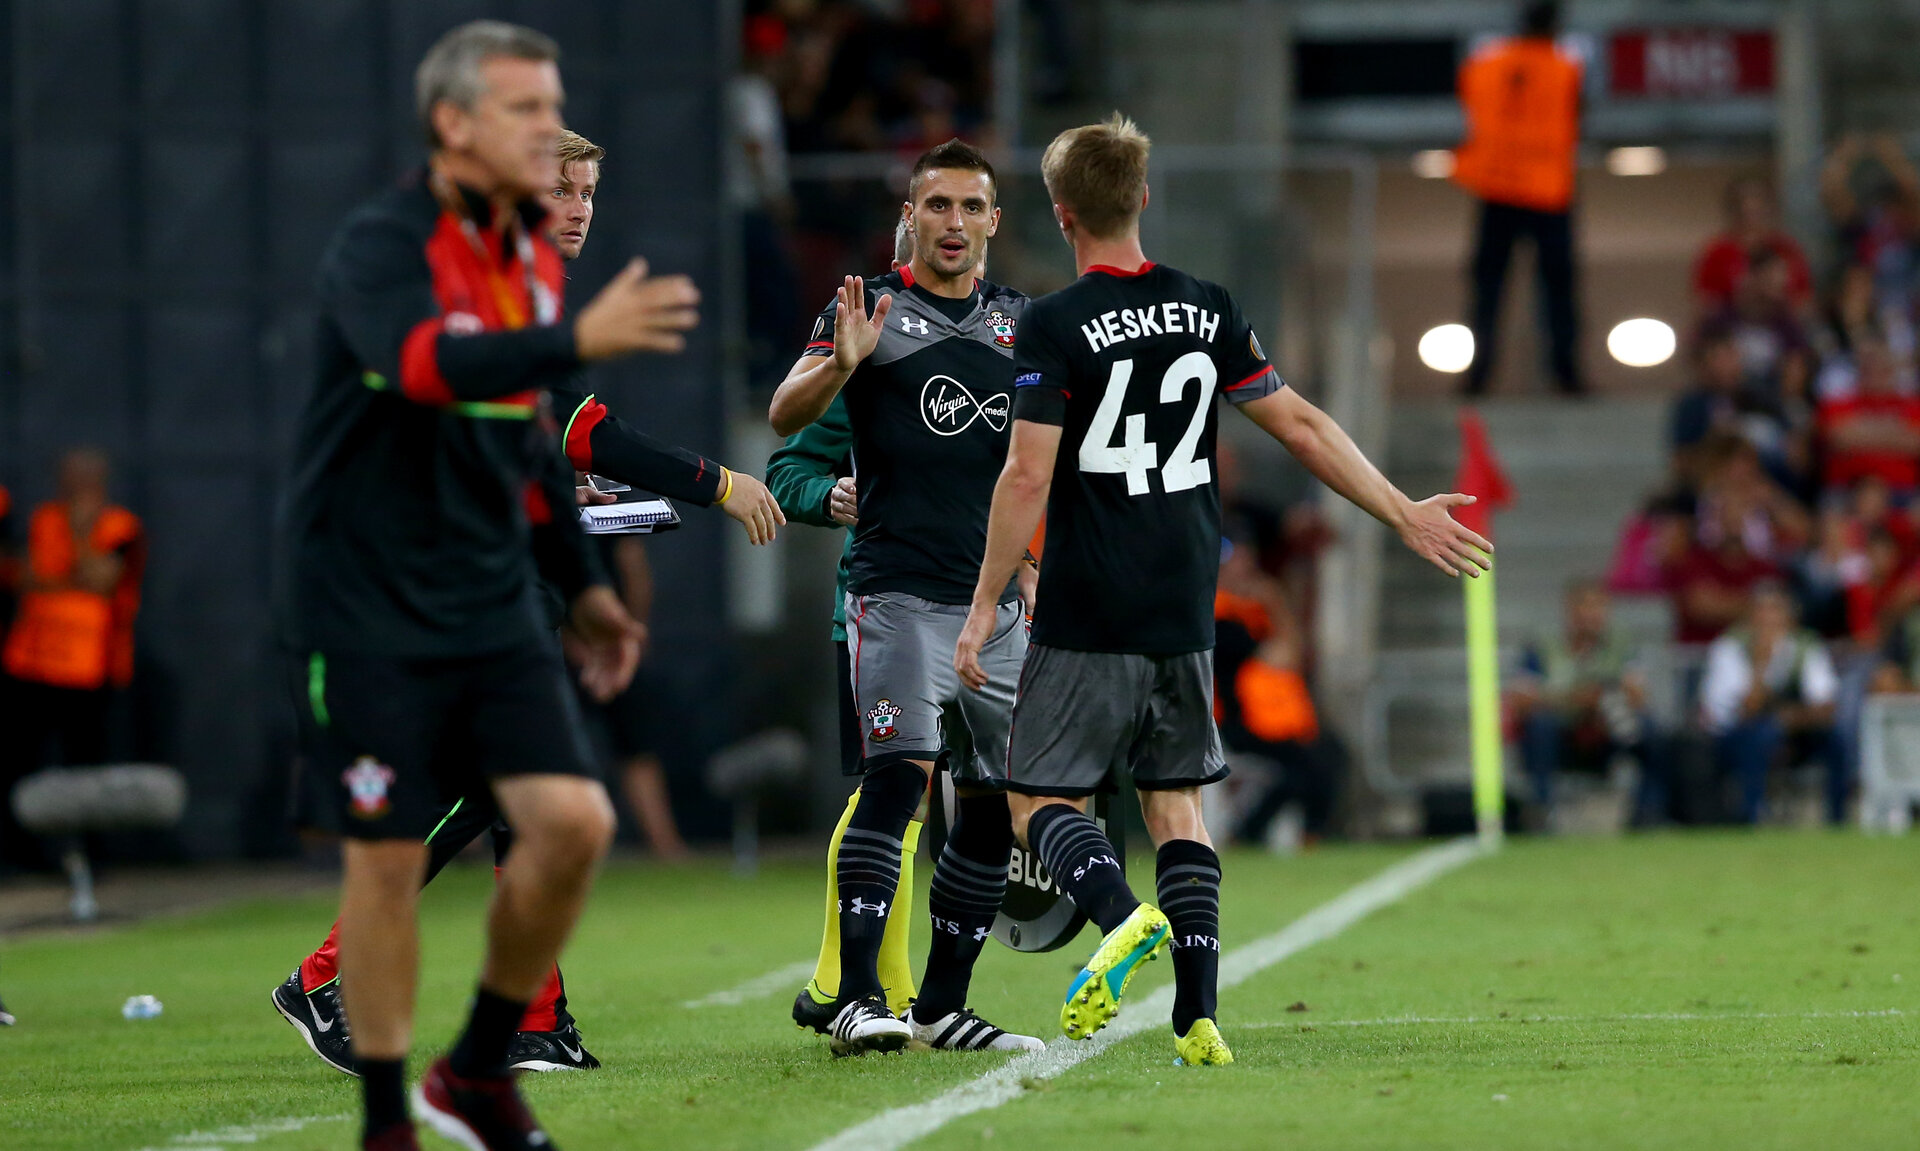 Dusan Tadic comes on for Jake Hesketh  during the UEFA Europa League match between Hapoel Be'er Sheva F.C. and Southampton at Turner Stadium, Beersheba, Israel on 29 September 2016. Photo by Matt  Watson/SFC/Digital South.